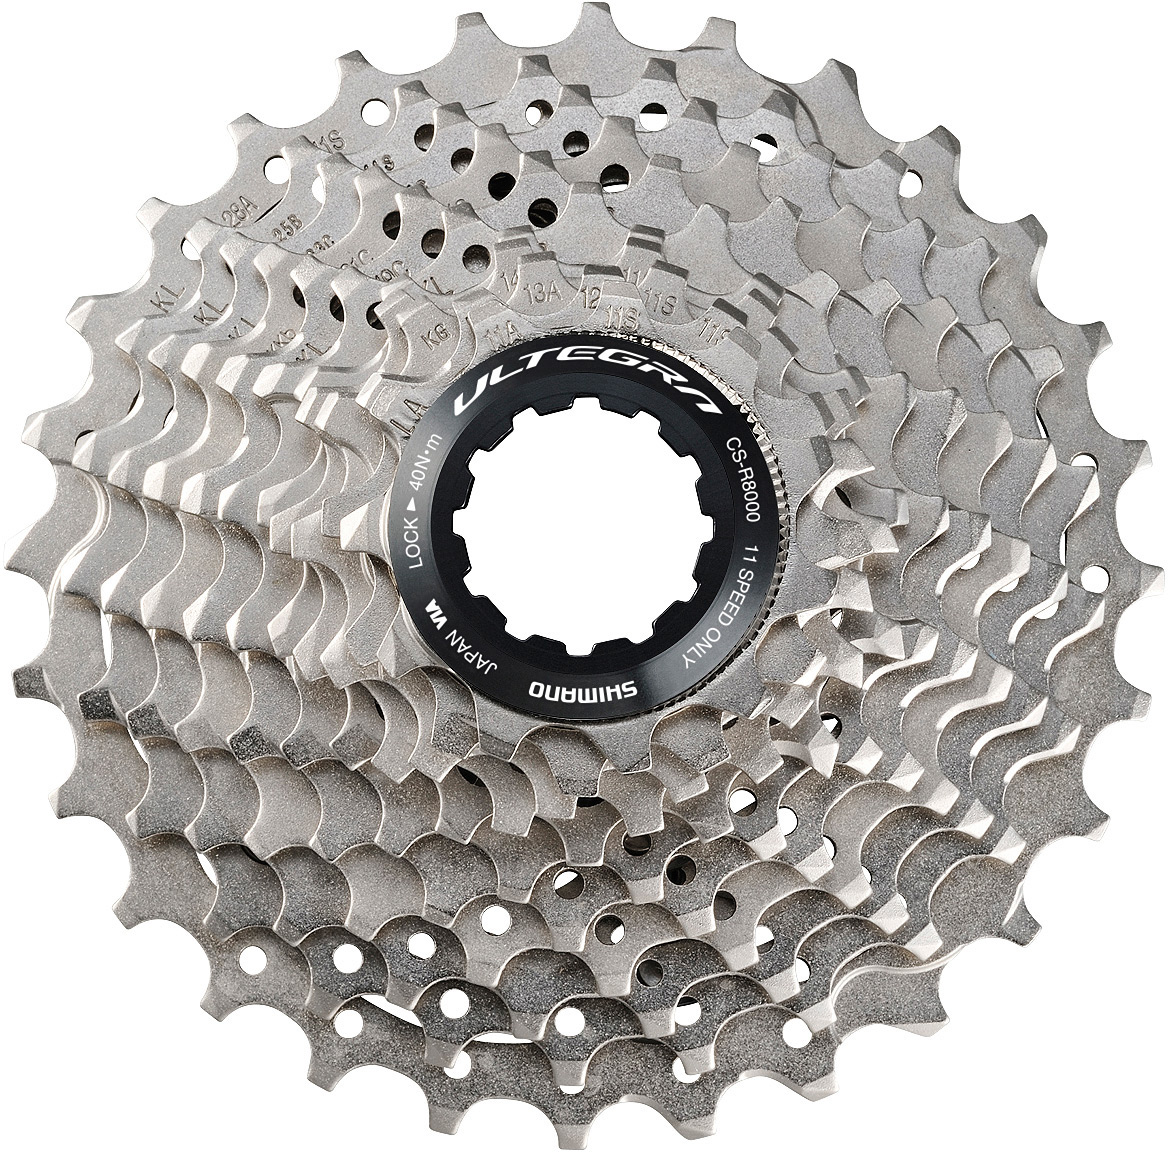 CS-R8000 Ultegra 11-speed cassette 11-30